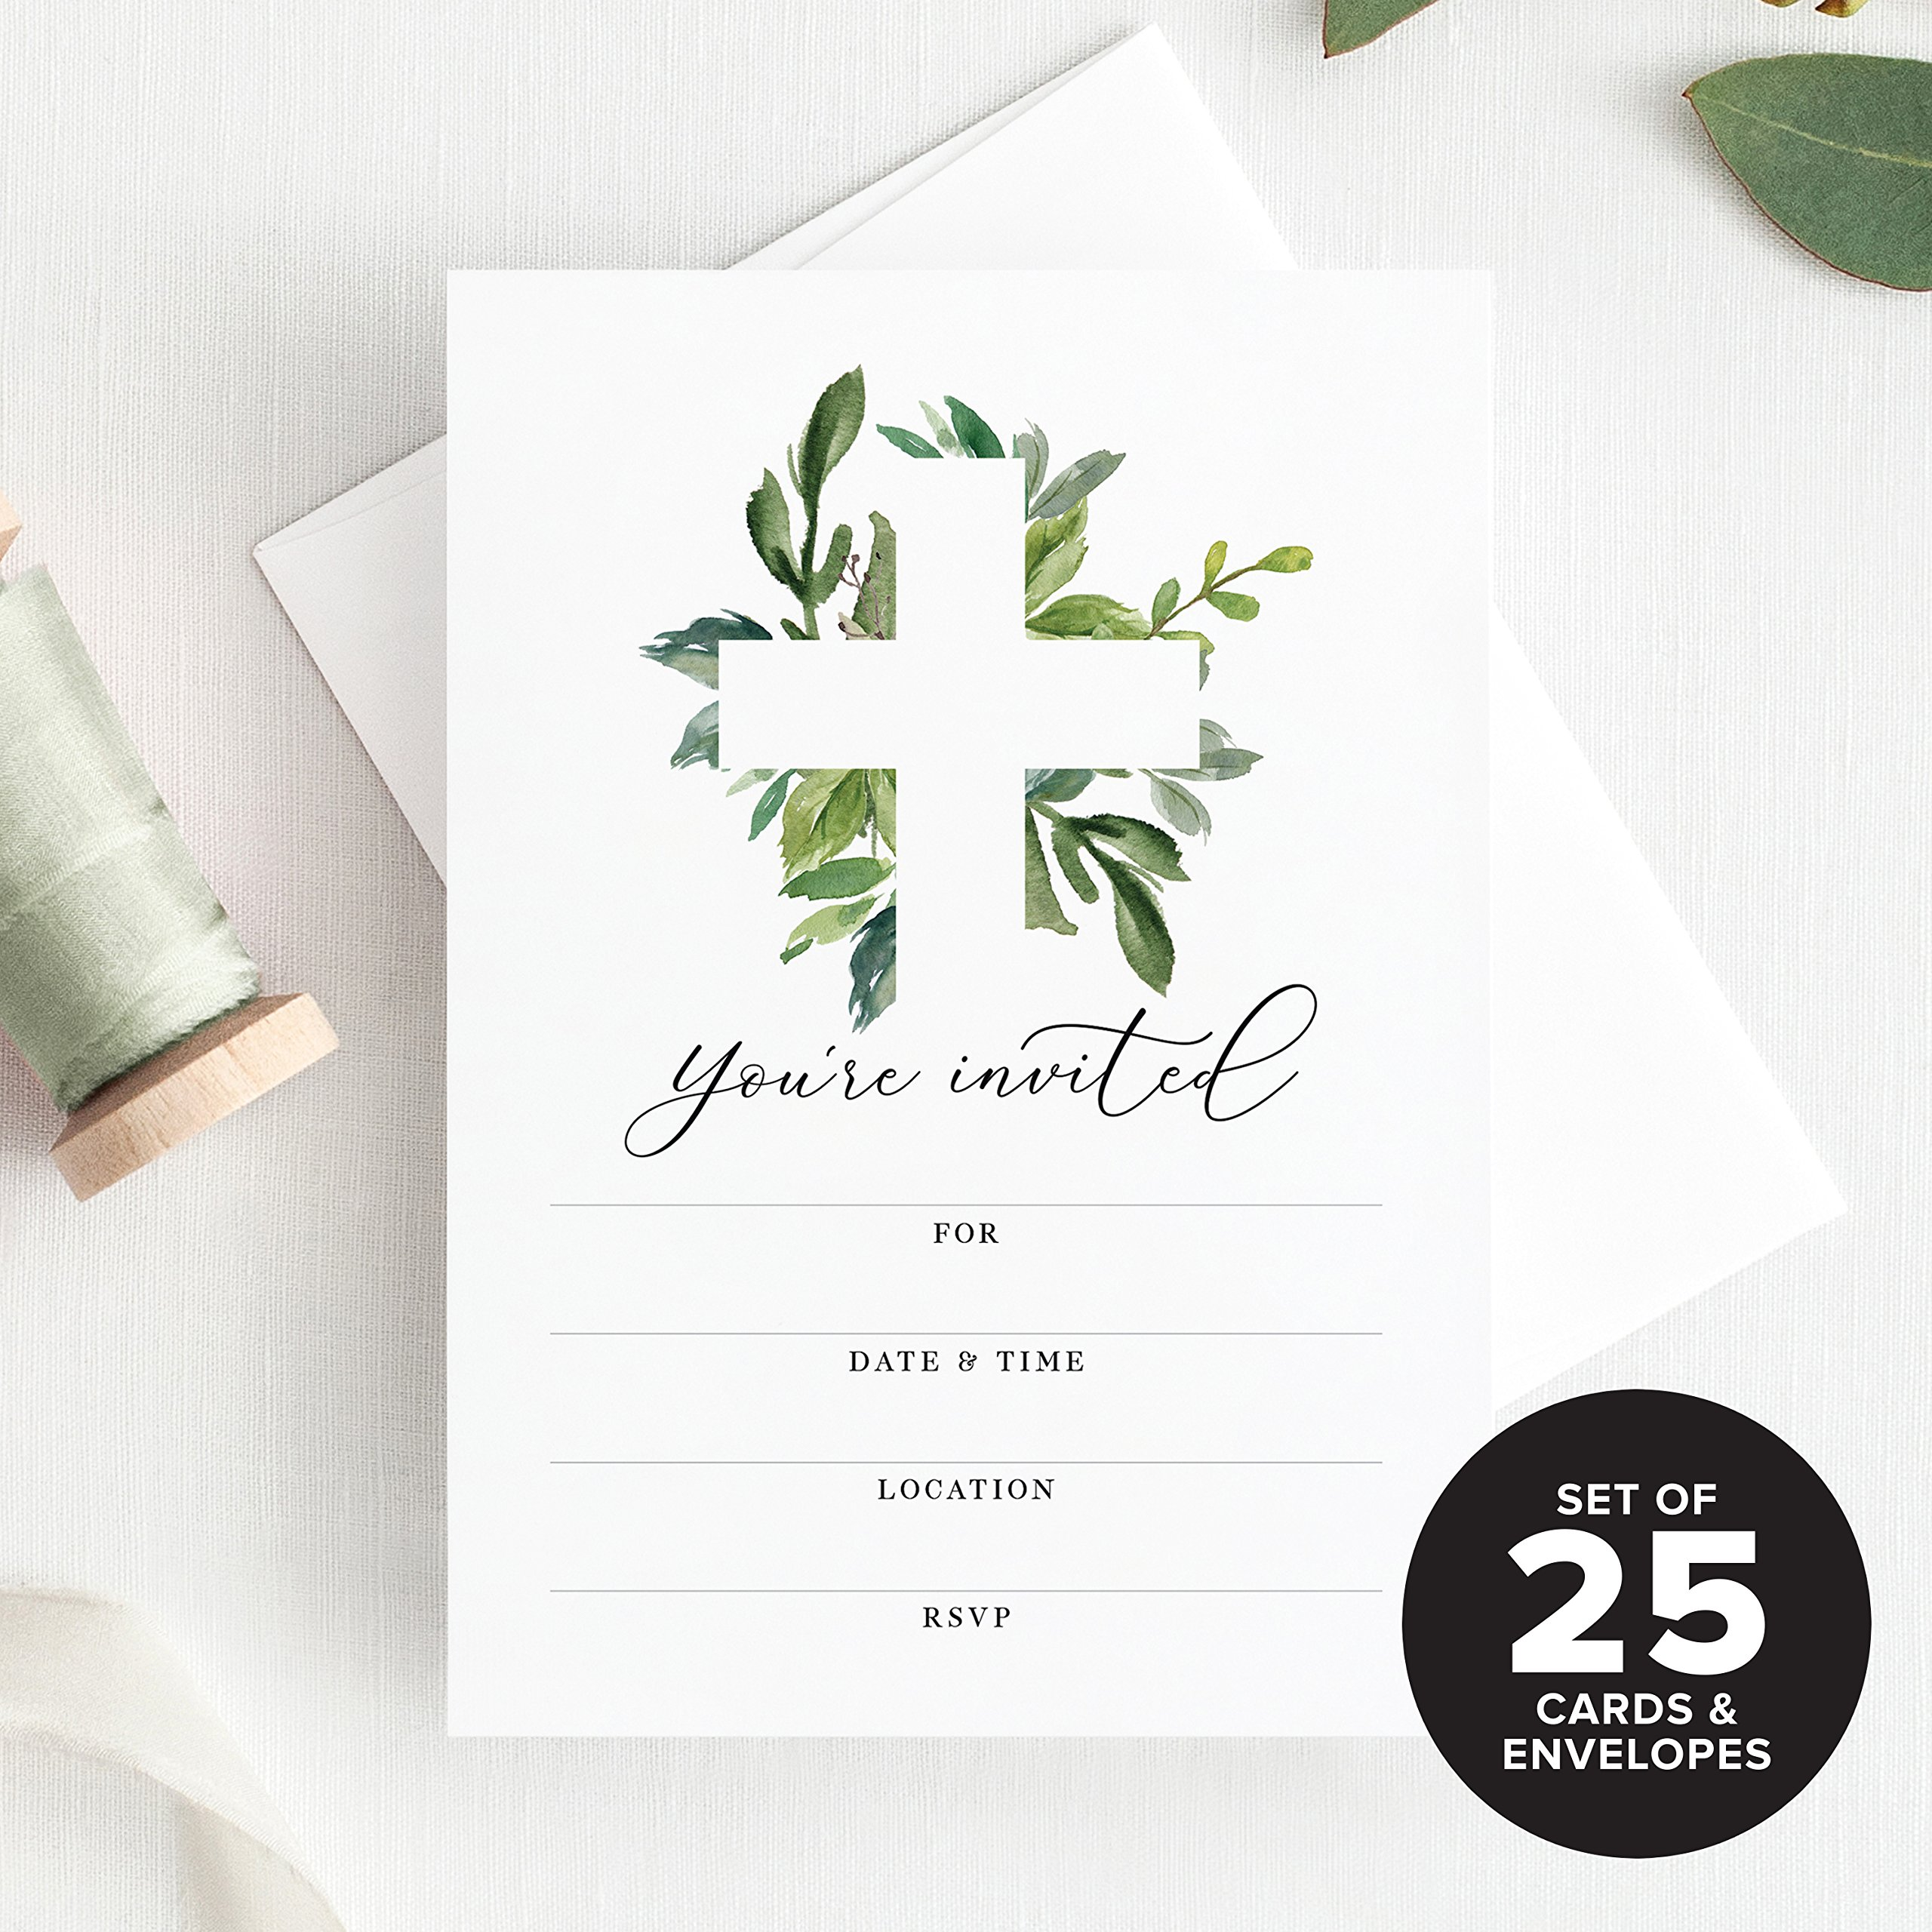 Baptism Invitations with envelopes 25 Pack, for First Communion, Christening, Baby Dedication, Religious Celebration or Reconciliation. for Girls & Boys —Fill in invites from Bliss Paper Boutique